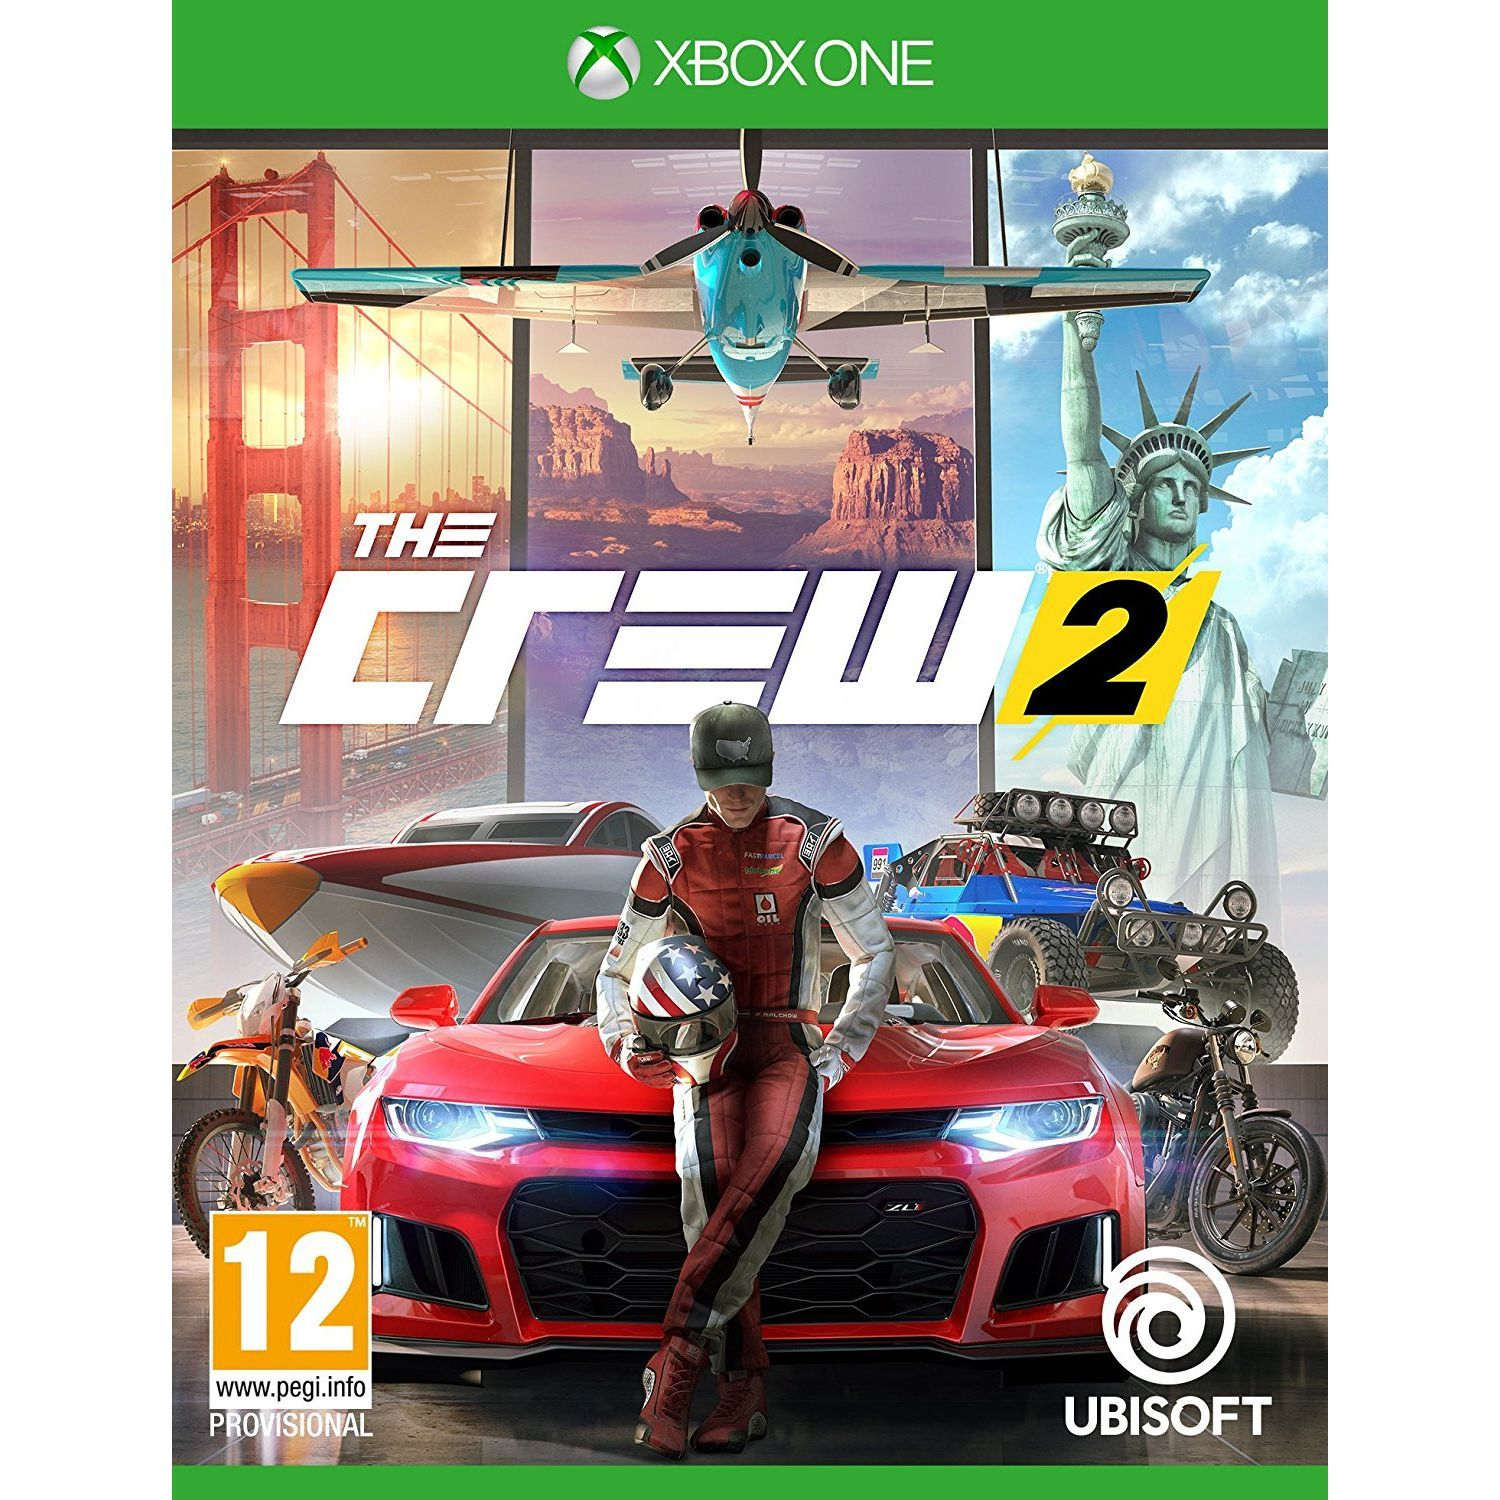 The Crew Xbox One : the crew 2 xbox one hd ~ Aude.kayakingforconservation.com Haus und Dekorationen